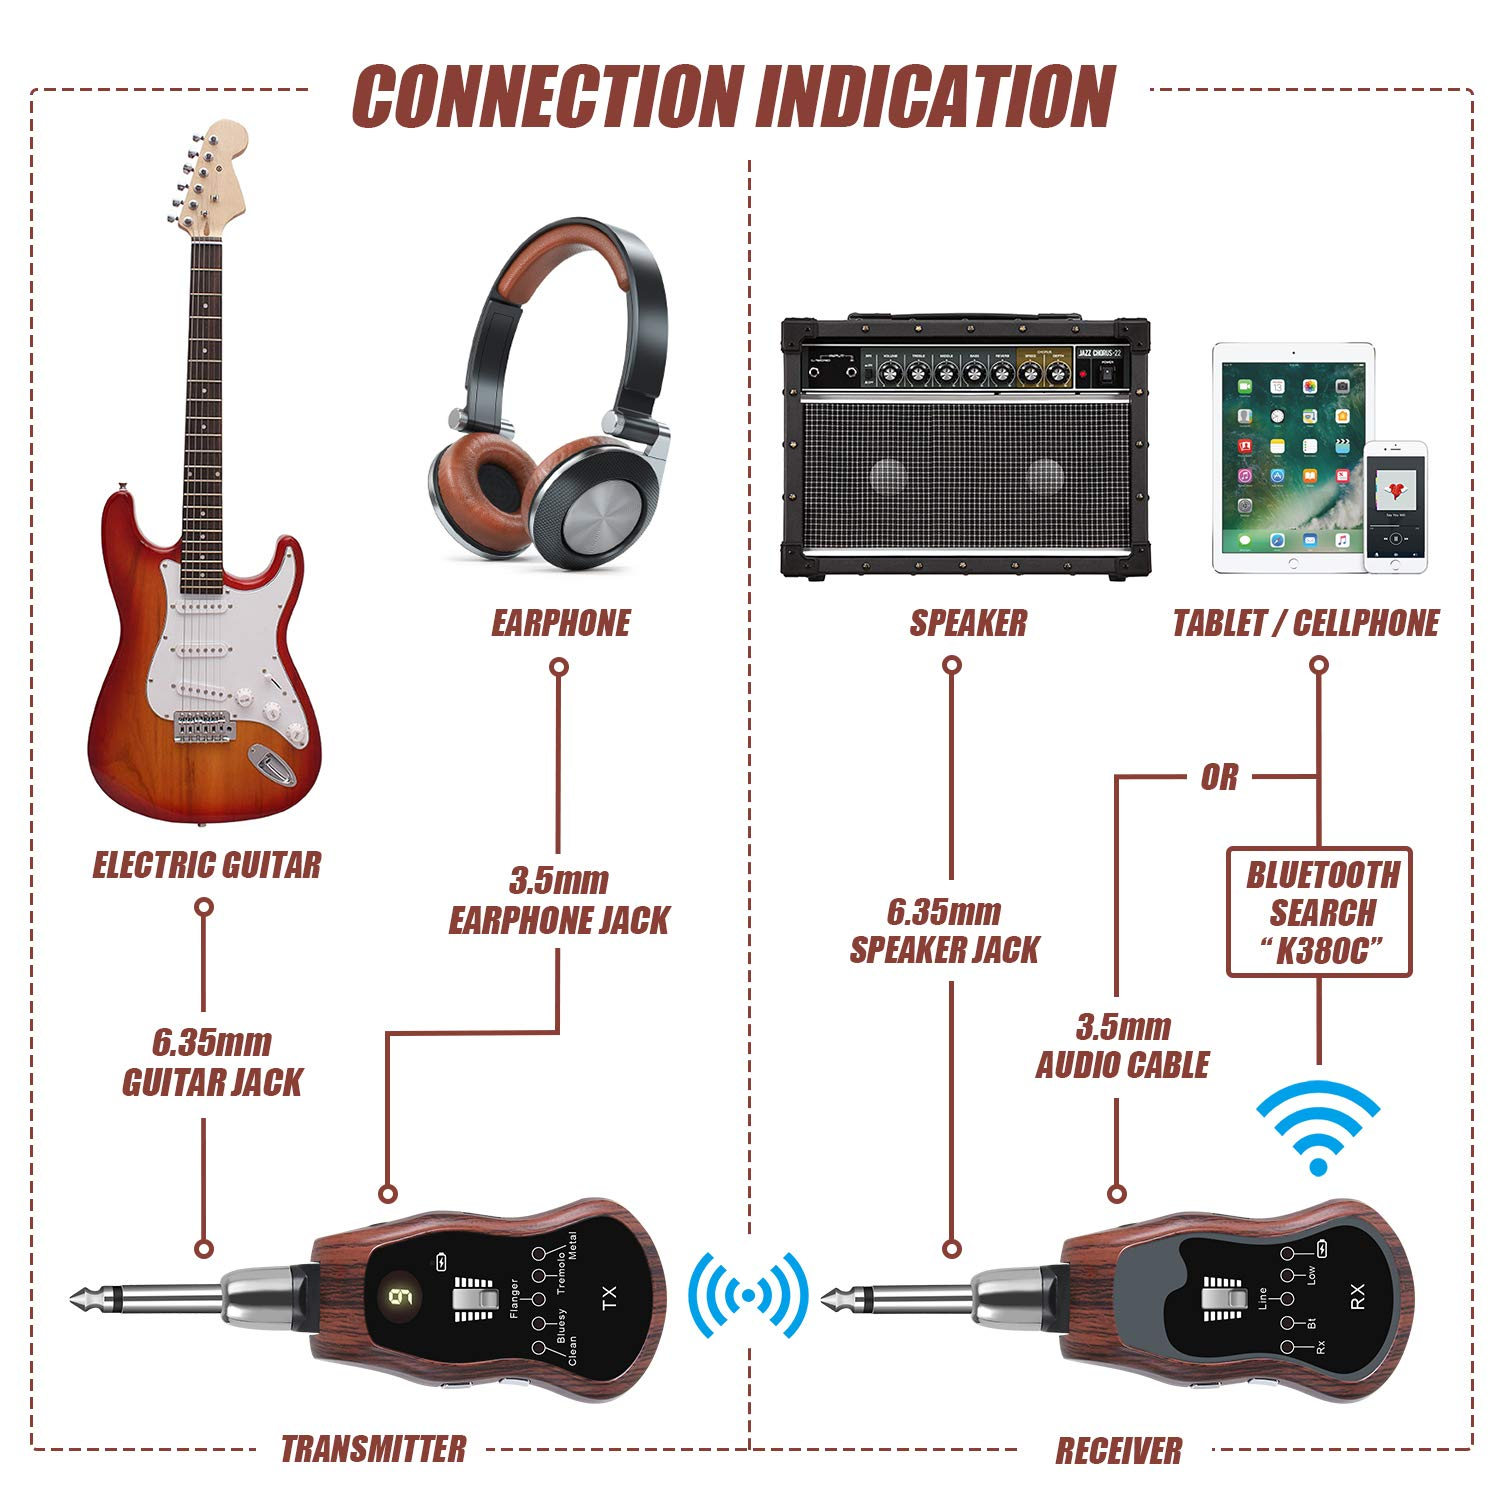 tonor wireless guitar system 10 channels rechargeable wireless audio transmitter receiver. Black Bedroom Furniture Sets. Home Design Ideas